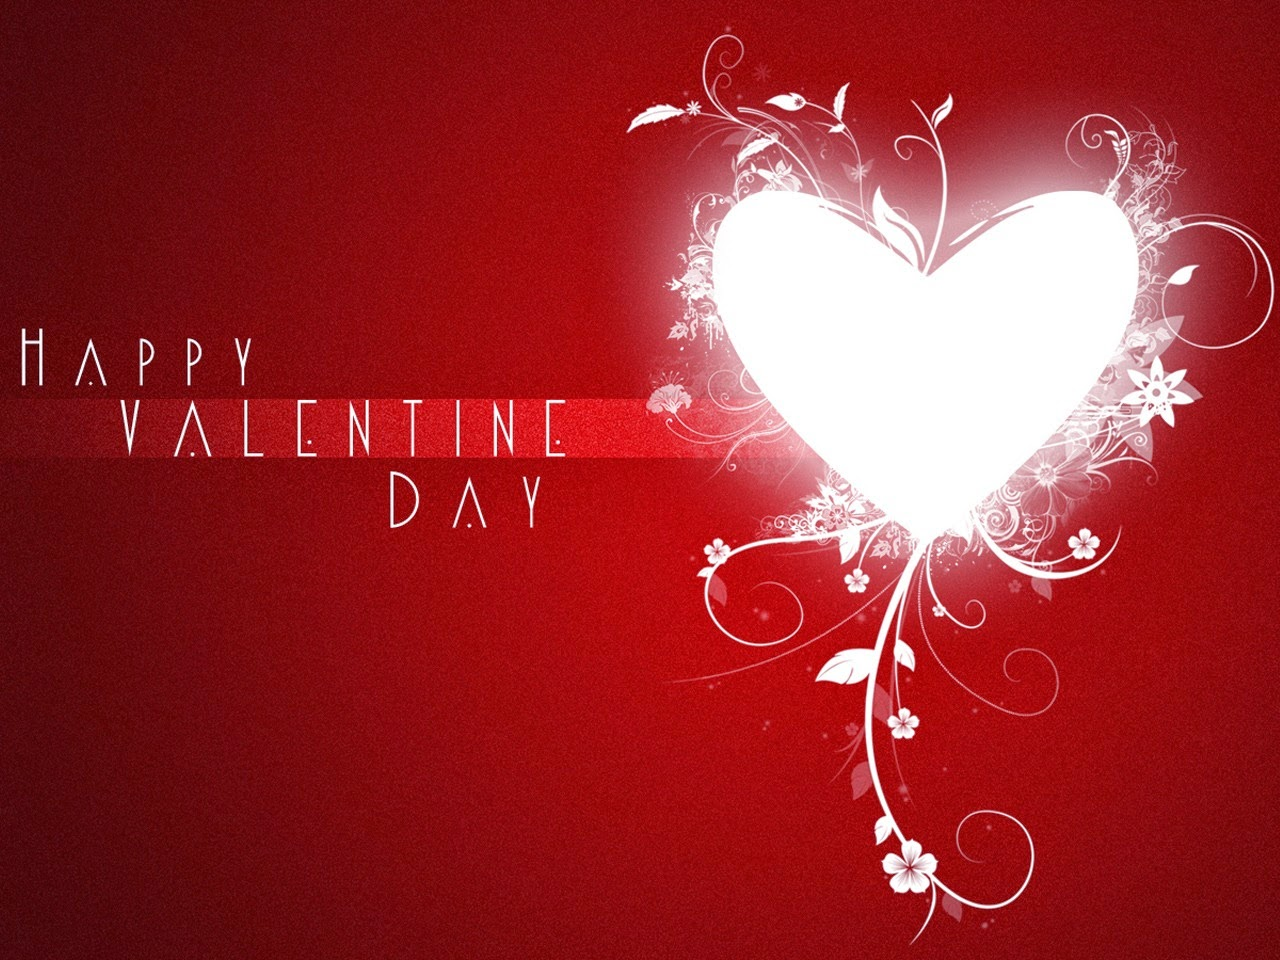 Happy Valentines Day 2017 HD Wallpapers